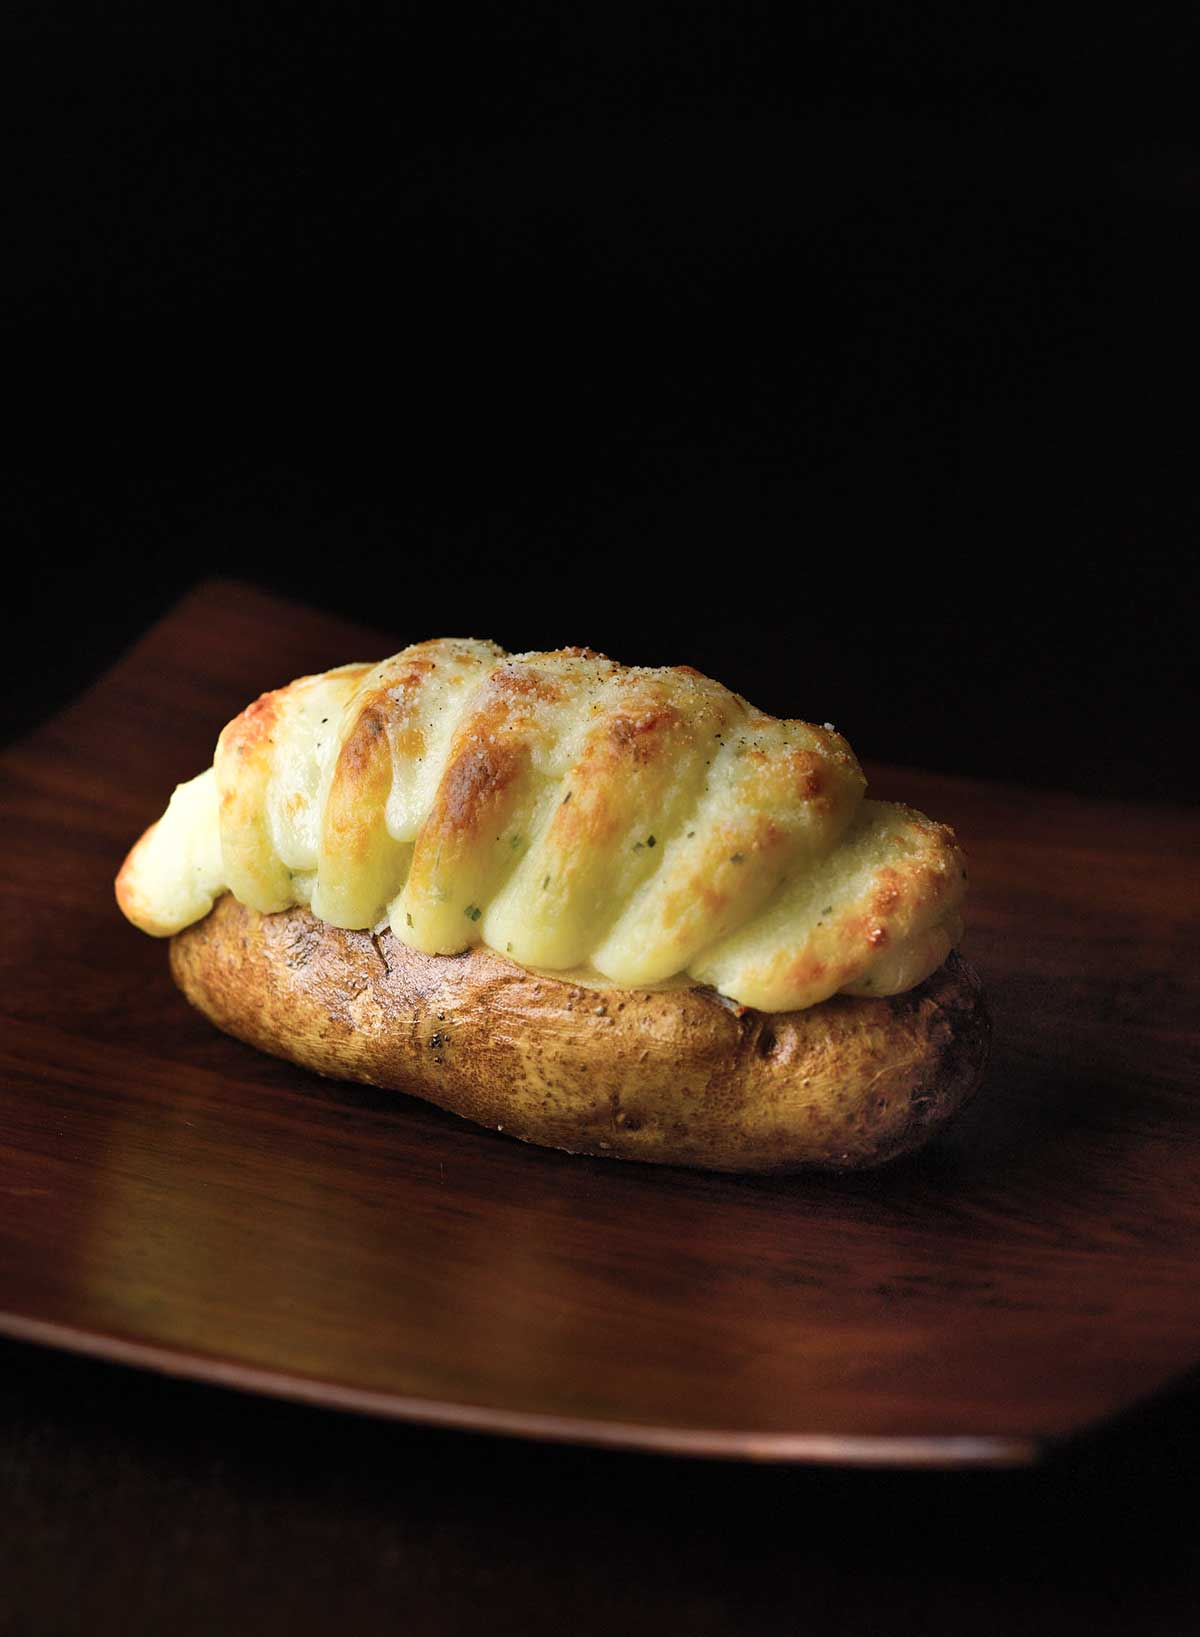 A twice-baked potato with Irish Cheddar on a dark wood table.